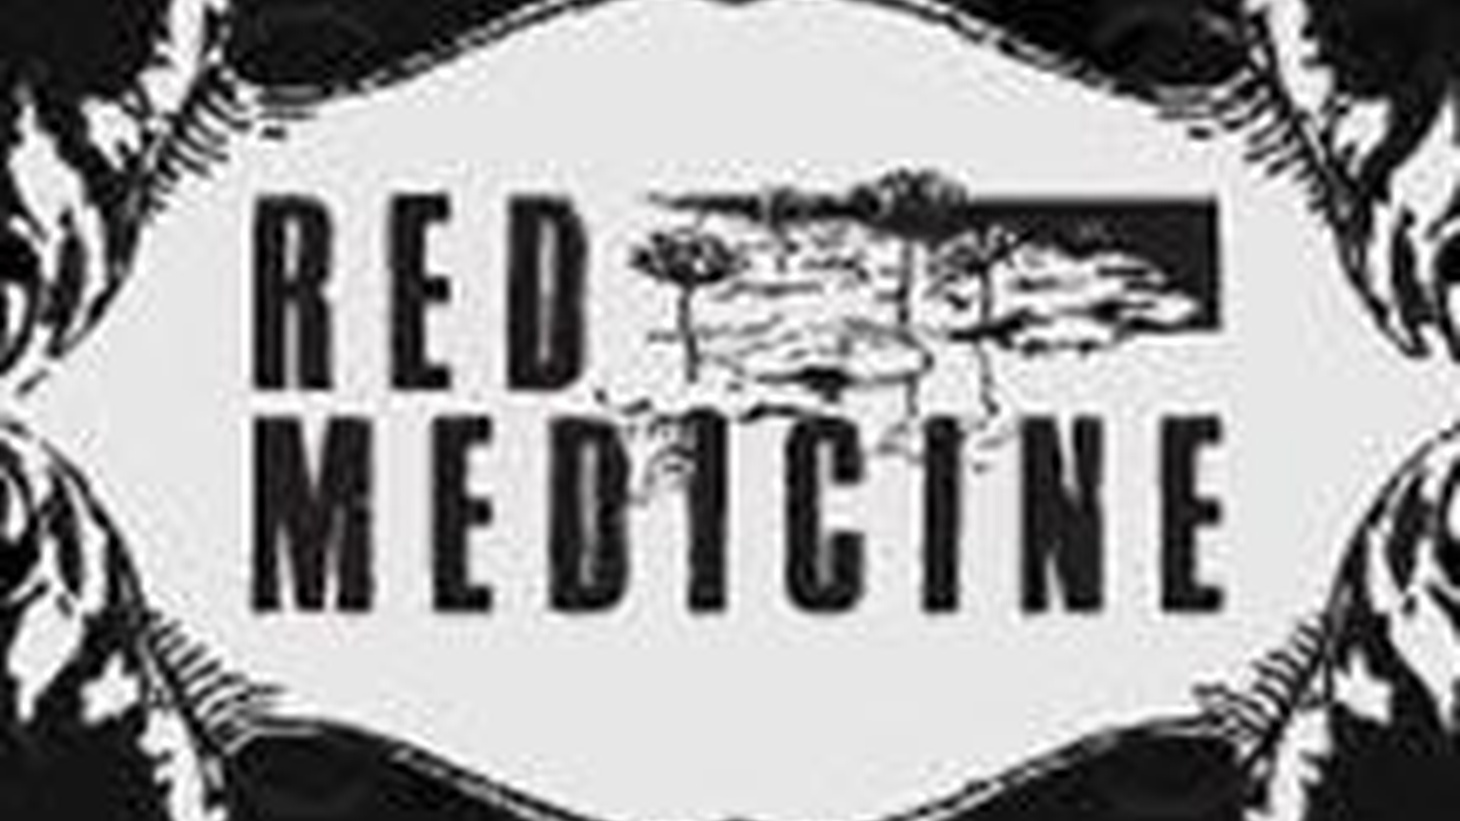 Jonathan Gold reviews Red Medicine, a restaurant perhaps best known for outing the identity of LA Times food critic S. Irene Virbila.